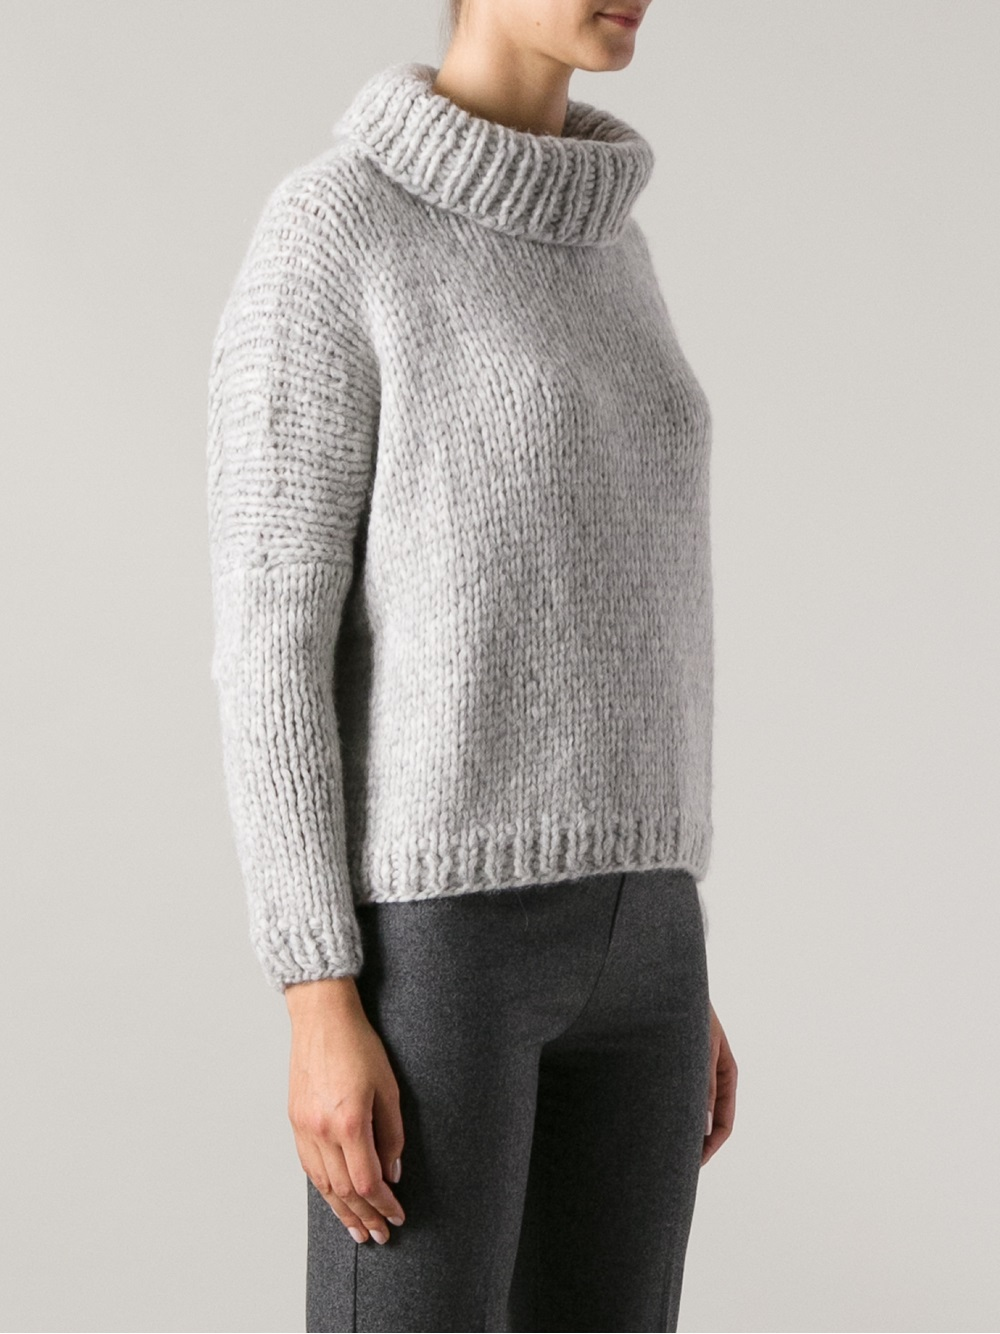 Lyst - Jo no fui Chunky Knit Sweater in Gray